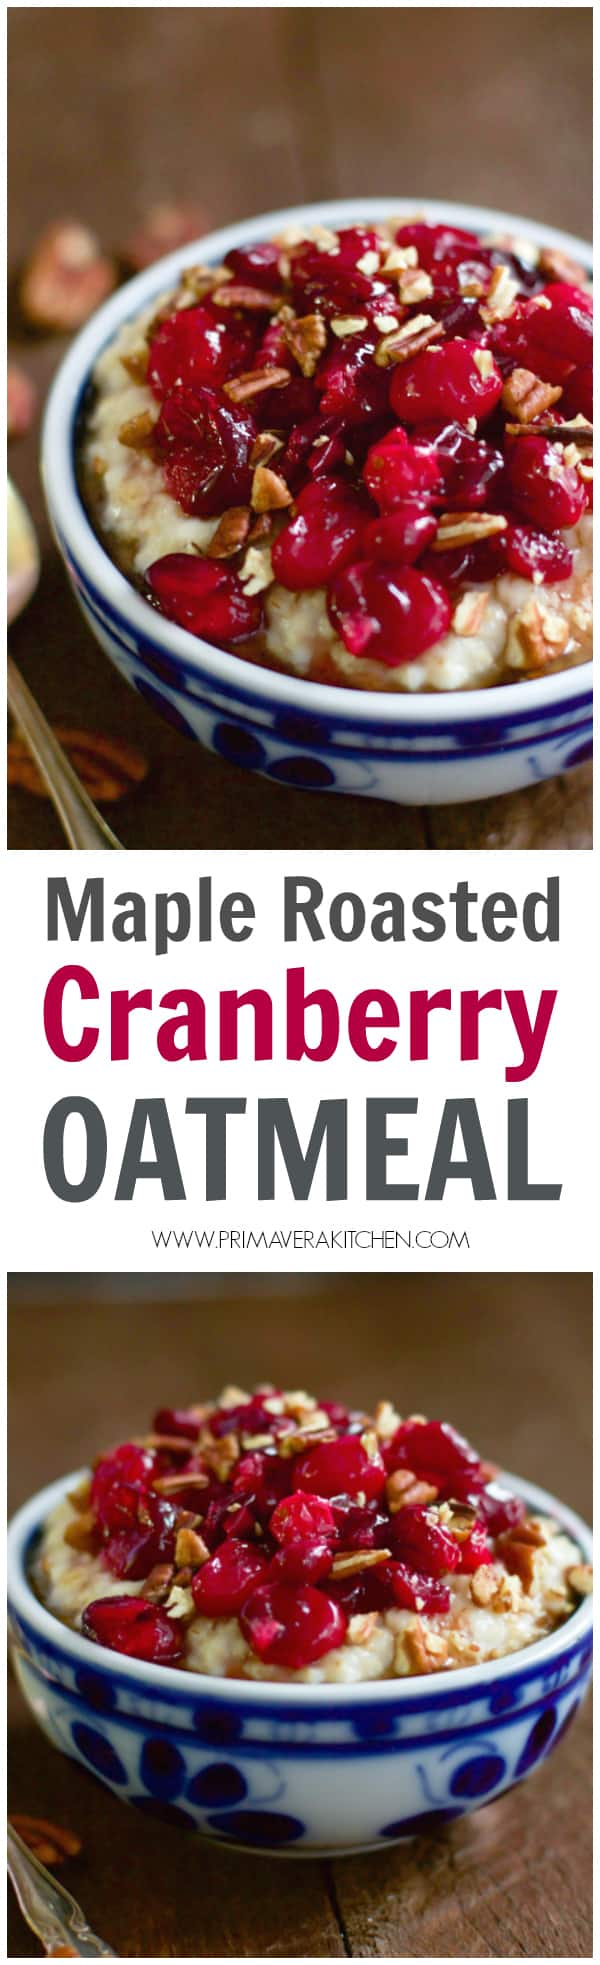 maple-roasted-cranberry-oatmeal_- This gluten and refined sugar-free Maple Roasted Cranberry Oatmeal is a perfect recipe for your Christmas morning breakfast.